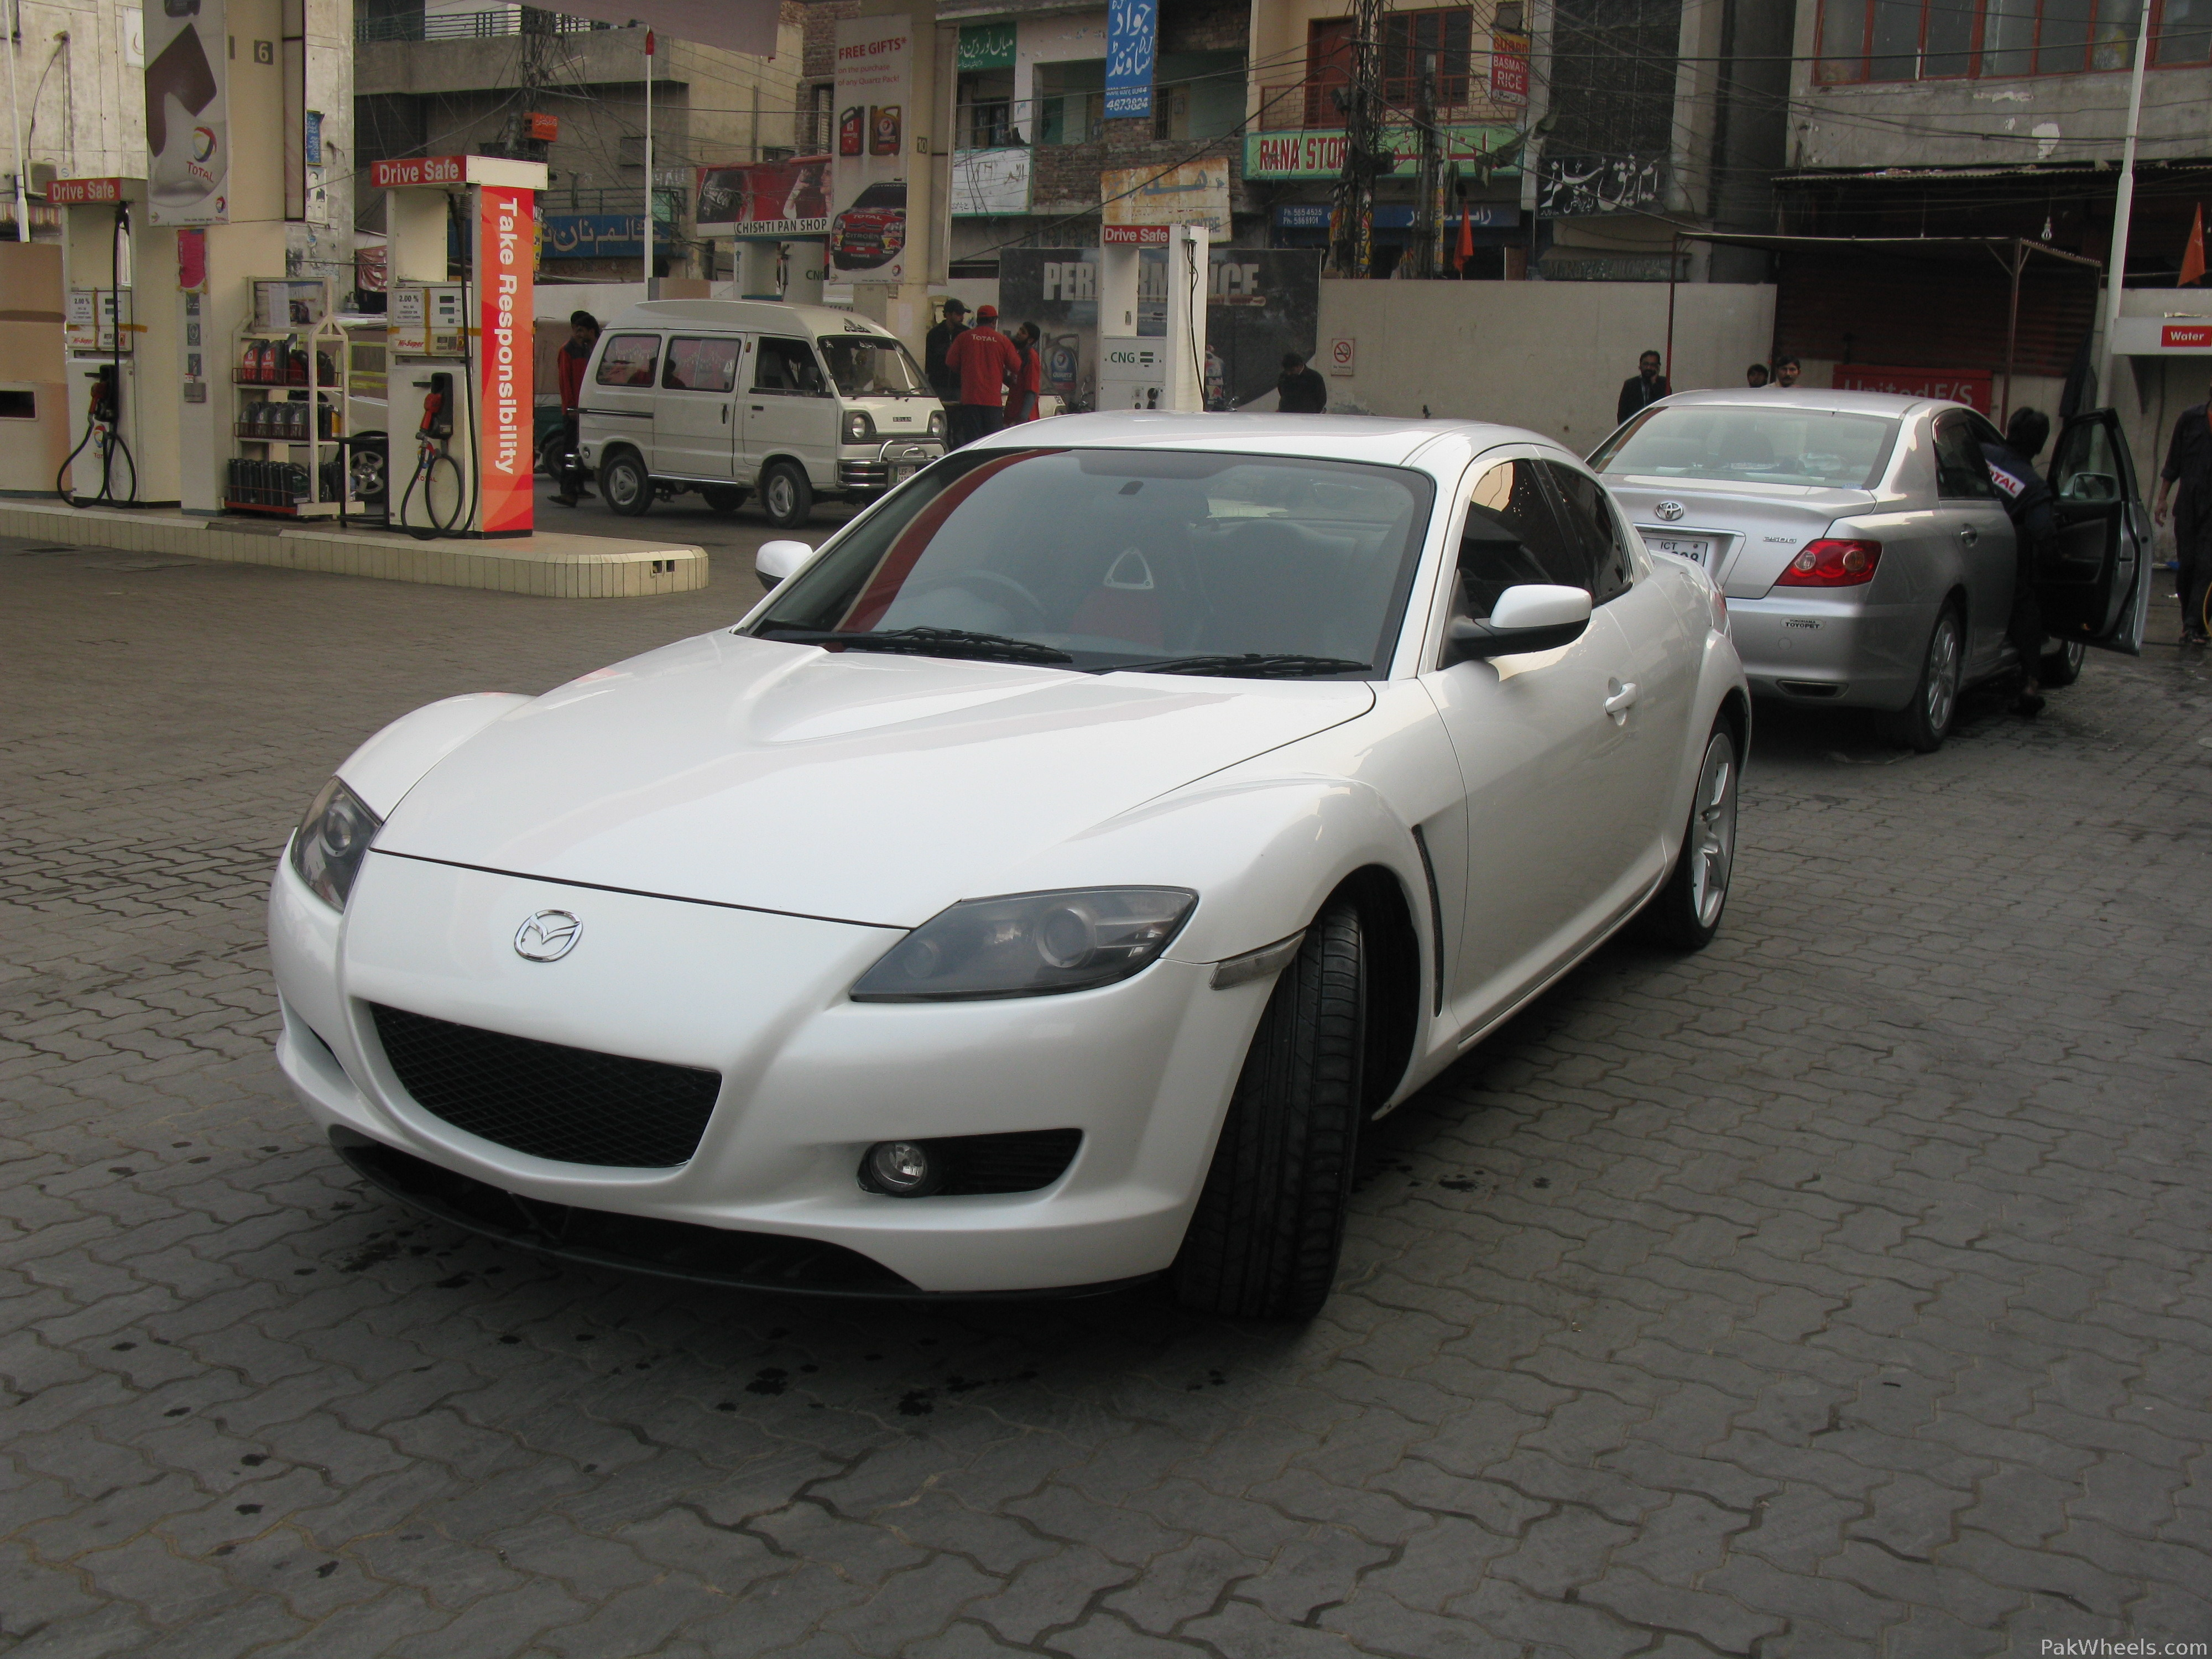 forums s t type sale img model buy throwaway price for mb in lahore